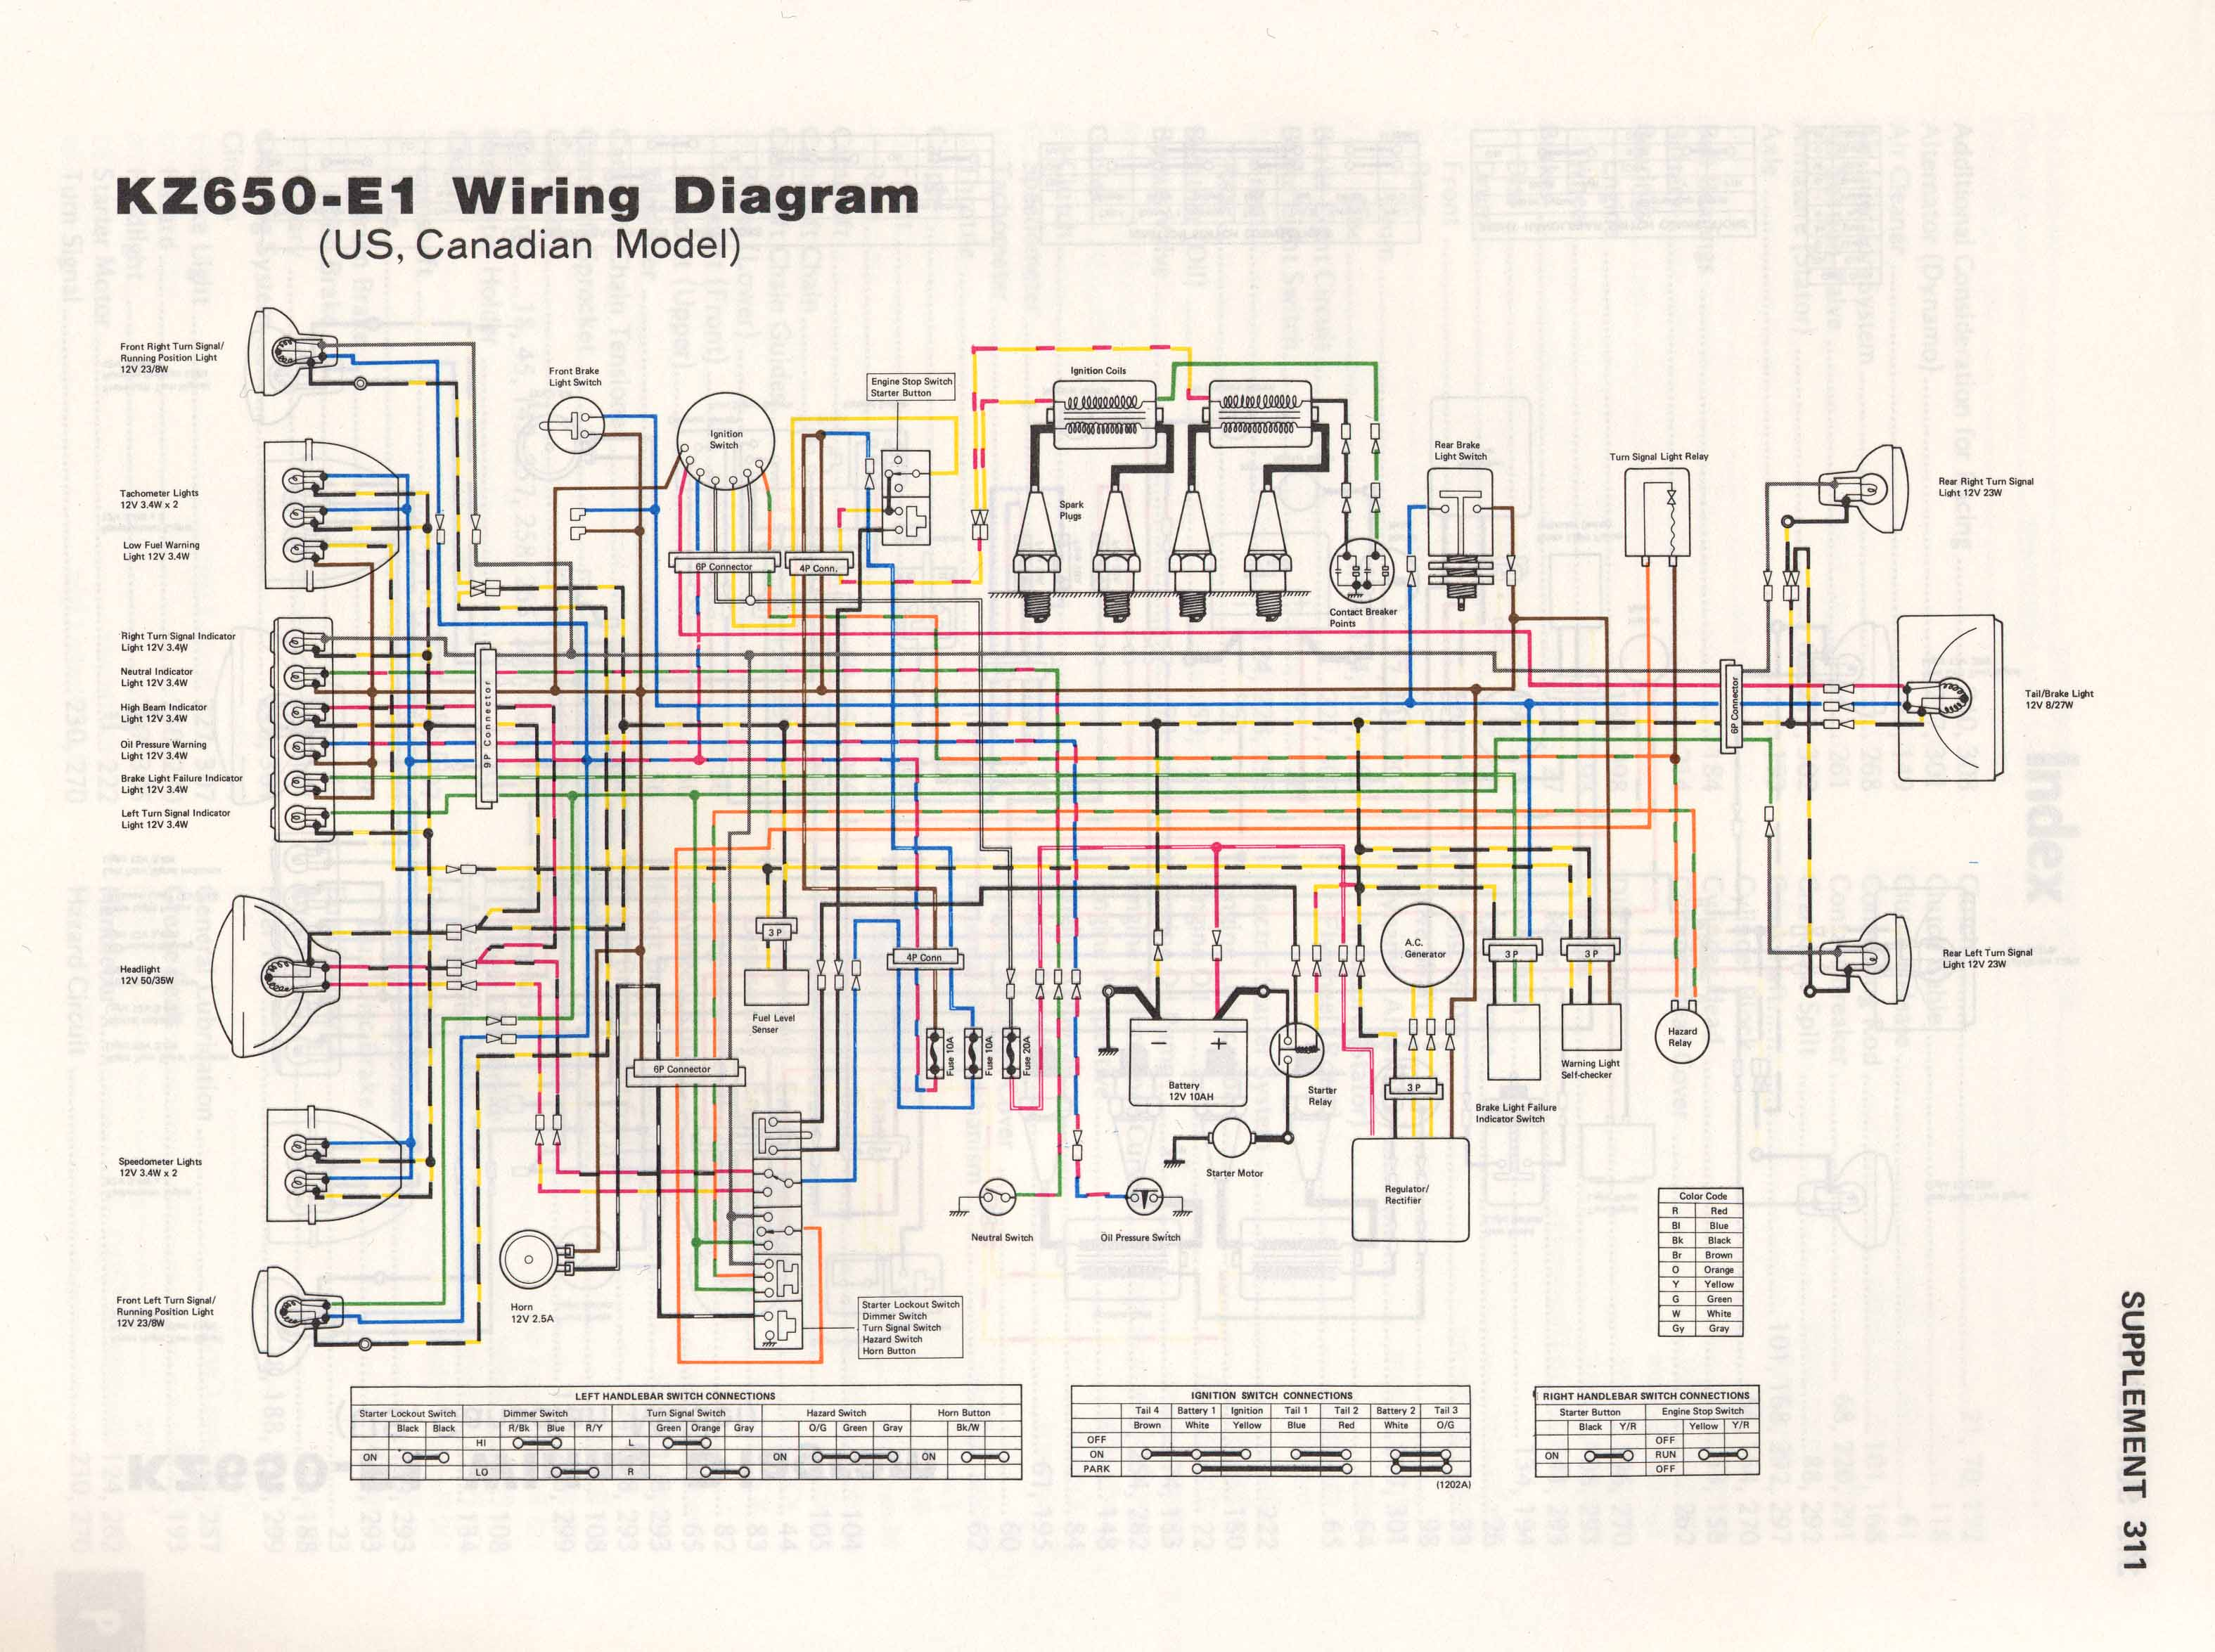 1982 Kawasaki Kz1300 Wiring Diagrams Diy Enthusiasts Bayou 250 Diagram 82 Kz1000 Easy To Read U2022 Rh Snicespa Com